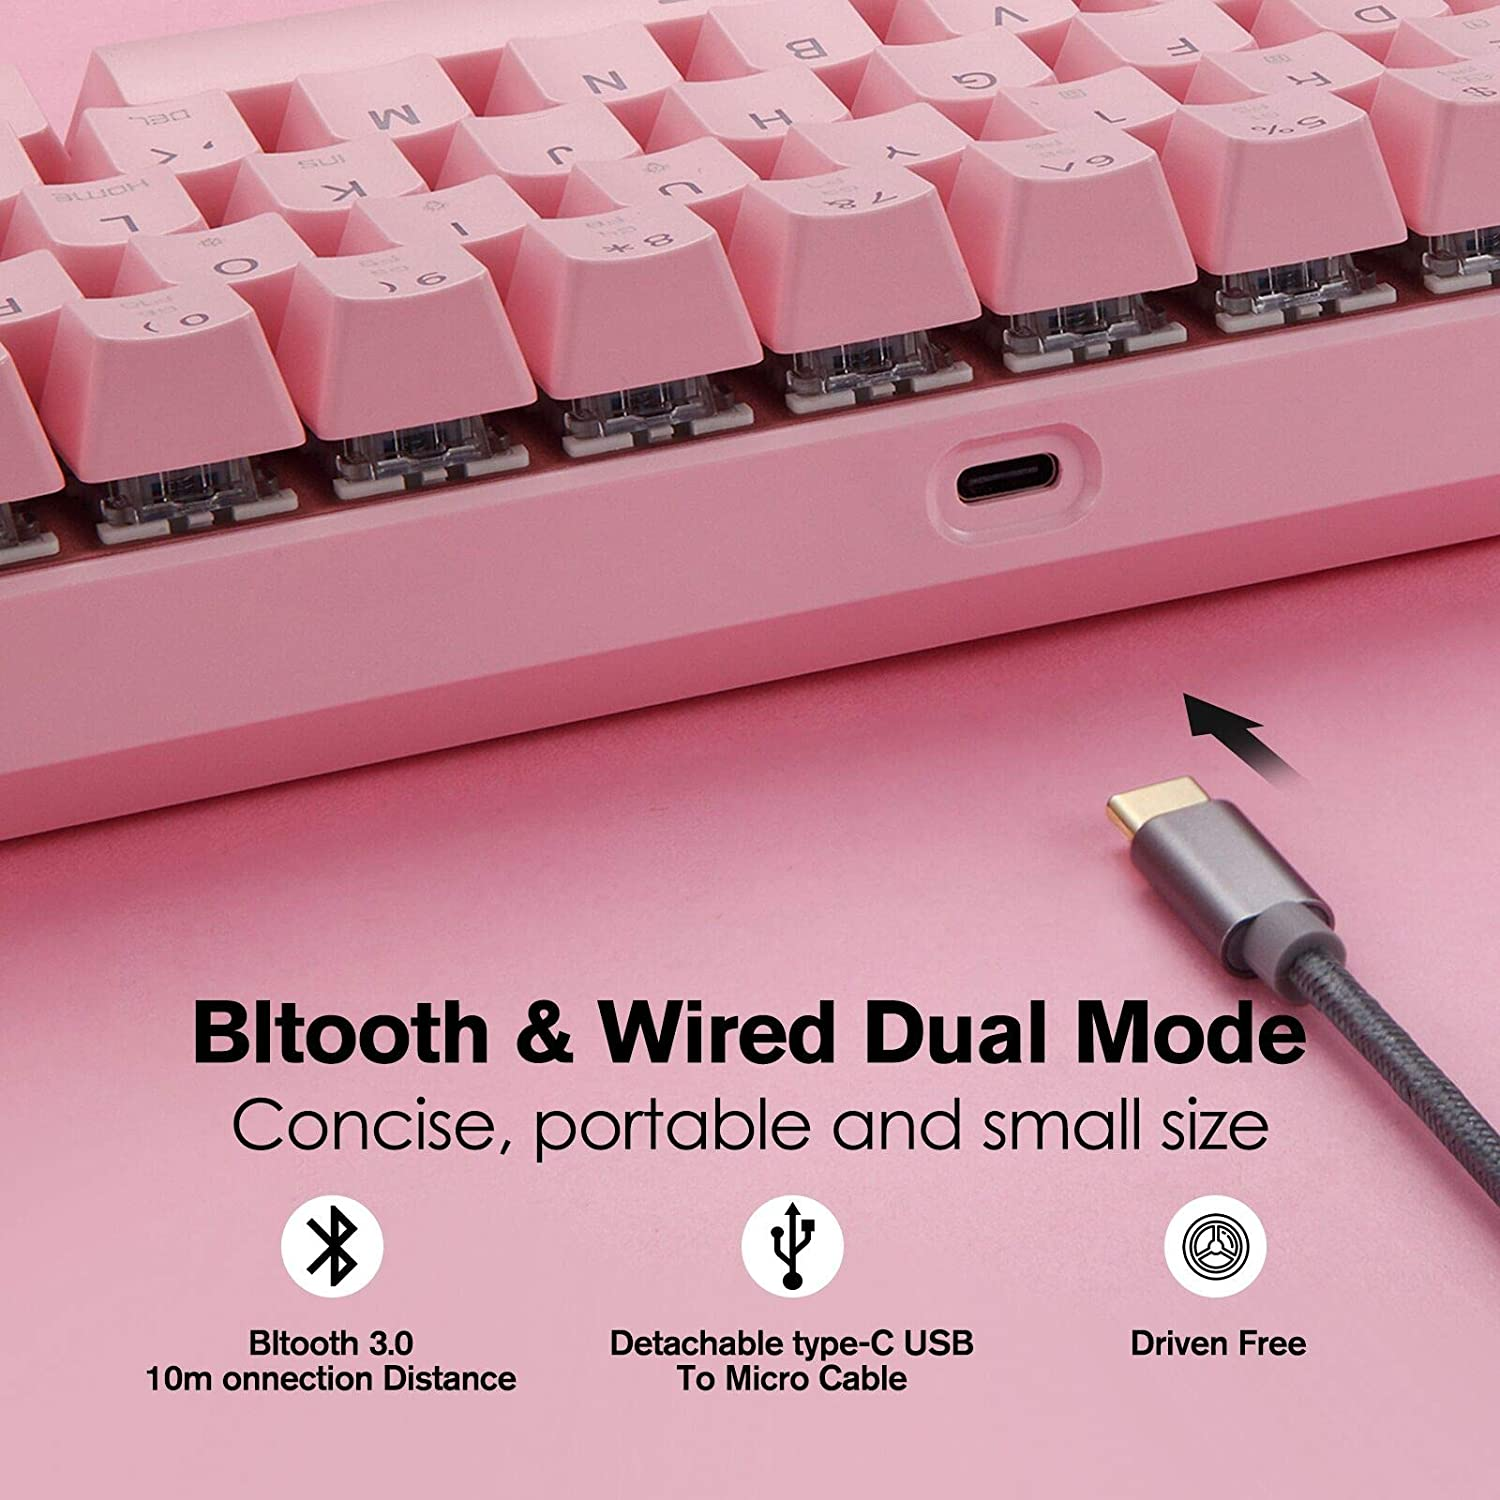 Motospeed 61 Keys Wired/Wireless 3.0 Mechanical Keyboard 60% RGB LED Backlit Type-C Office/Gaming Keyboard for PC/Mac/Linux/iPad/iPhone/Smartphone/Laptop Pink